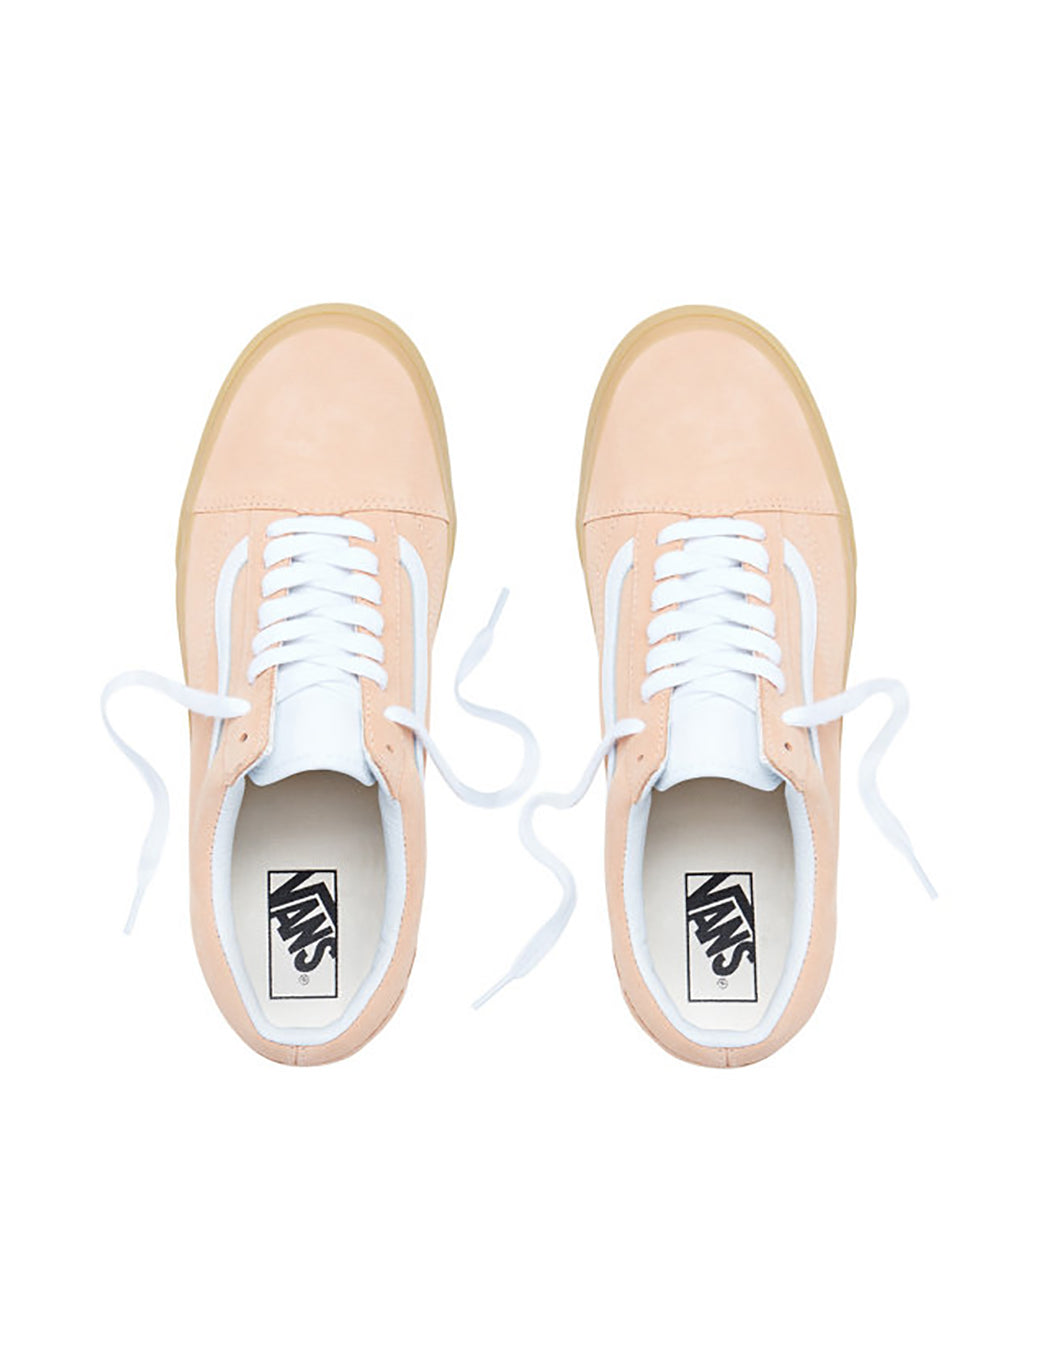 1be134be69 ... Vans Old Skool Double Light Gum - Apricot Ice ...